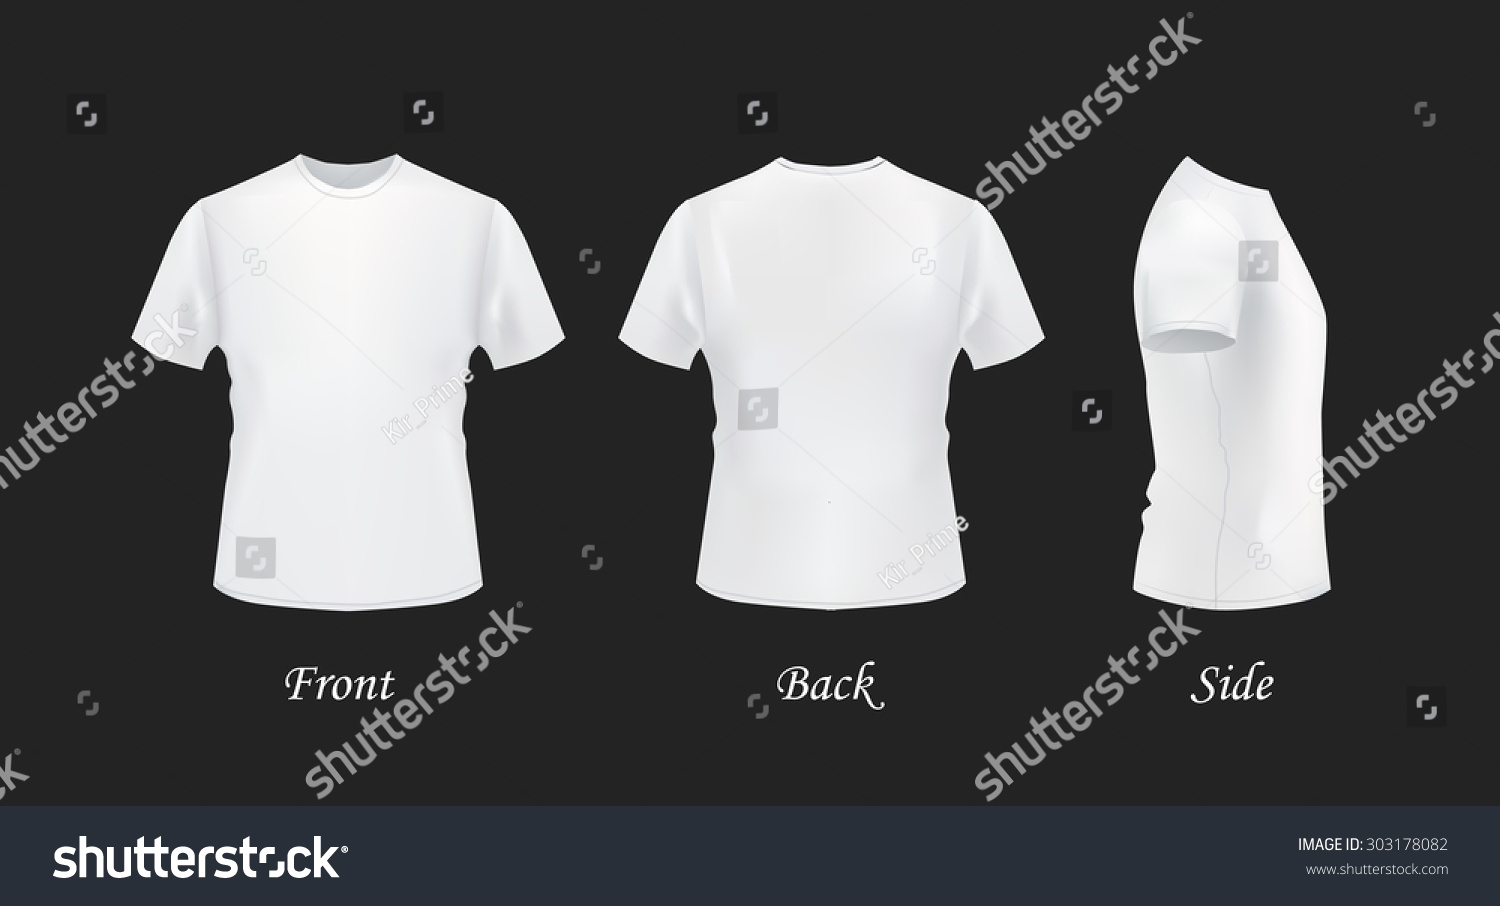 White t shirt eps - T Shirt Template Front Side Back View White T Shirts